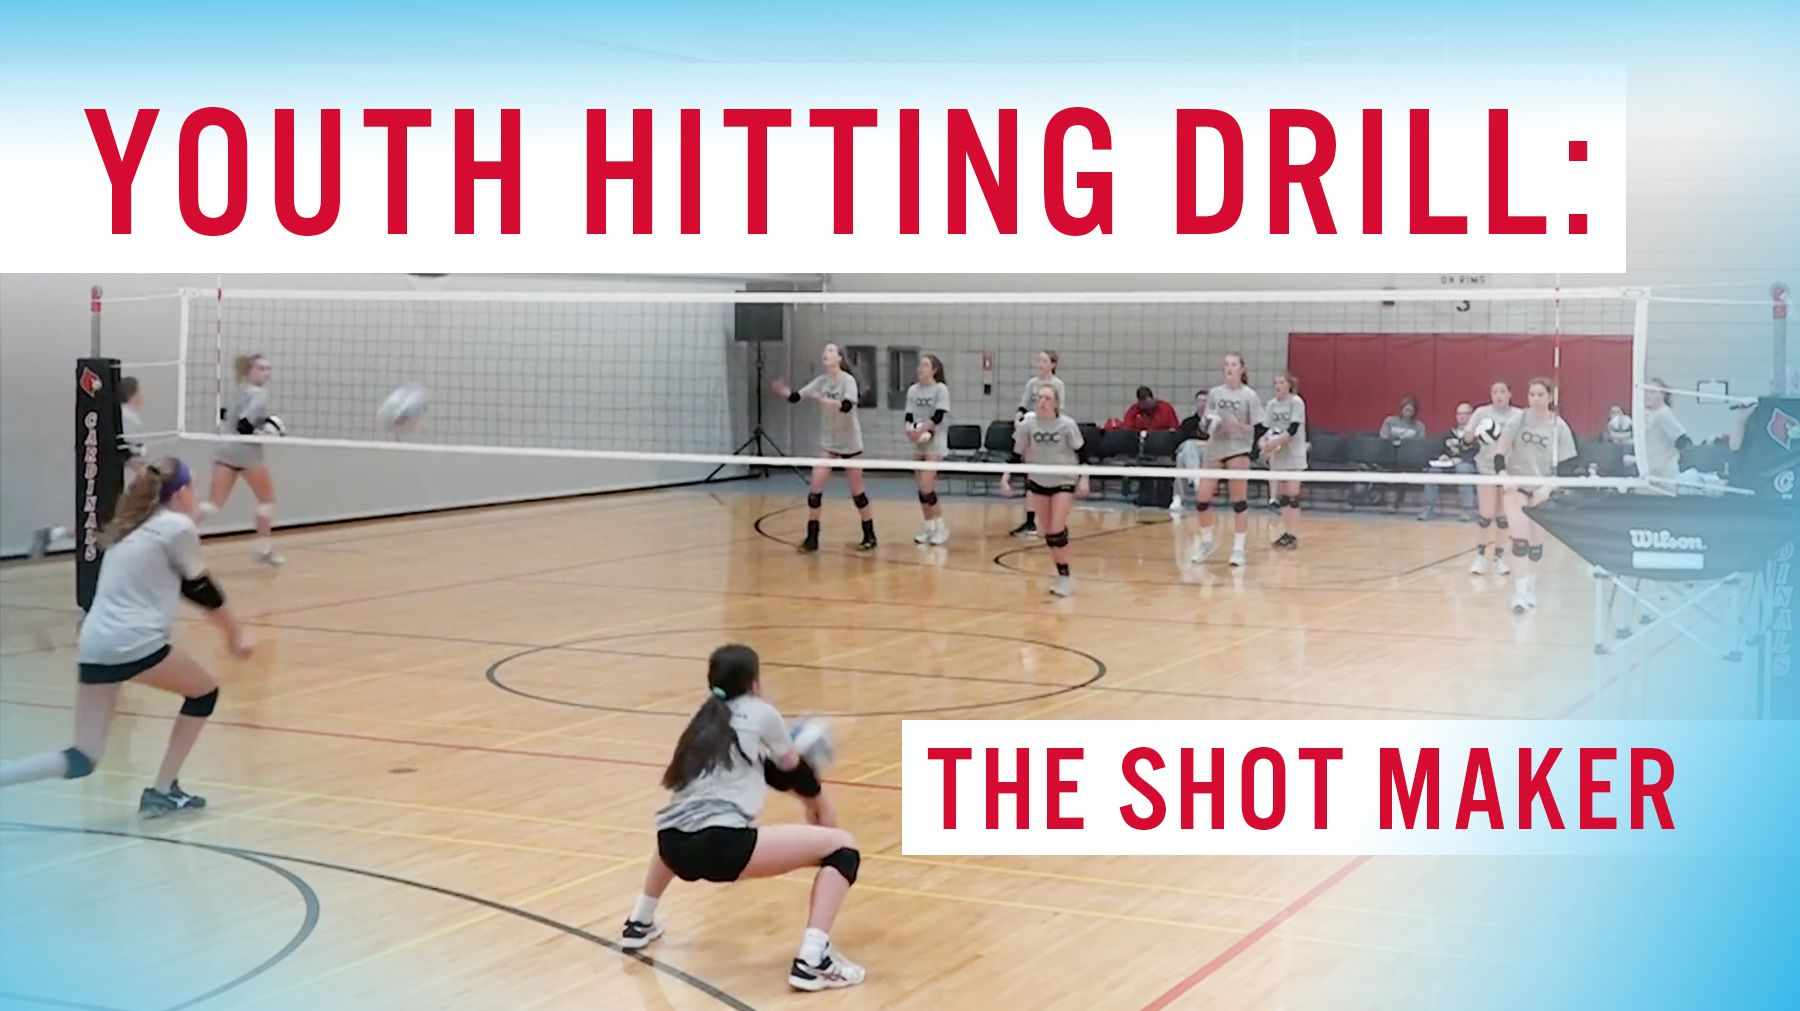 Youth Hitting Drill The Shot Maker The Art Of Coaching Volleyball Volleyball Skills Youth Volleyball Volleyball Practice